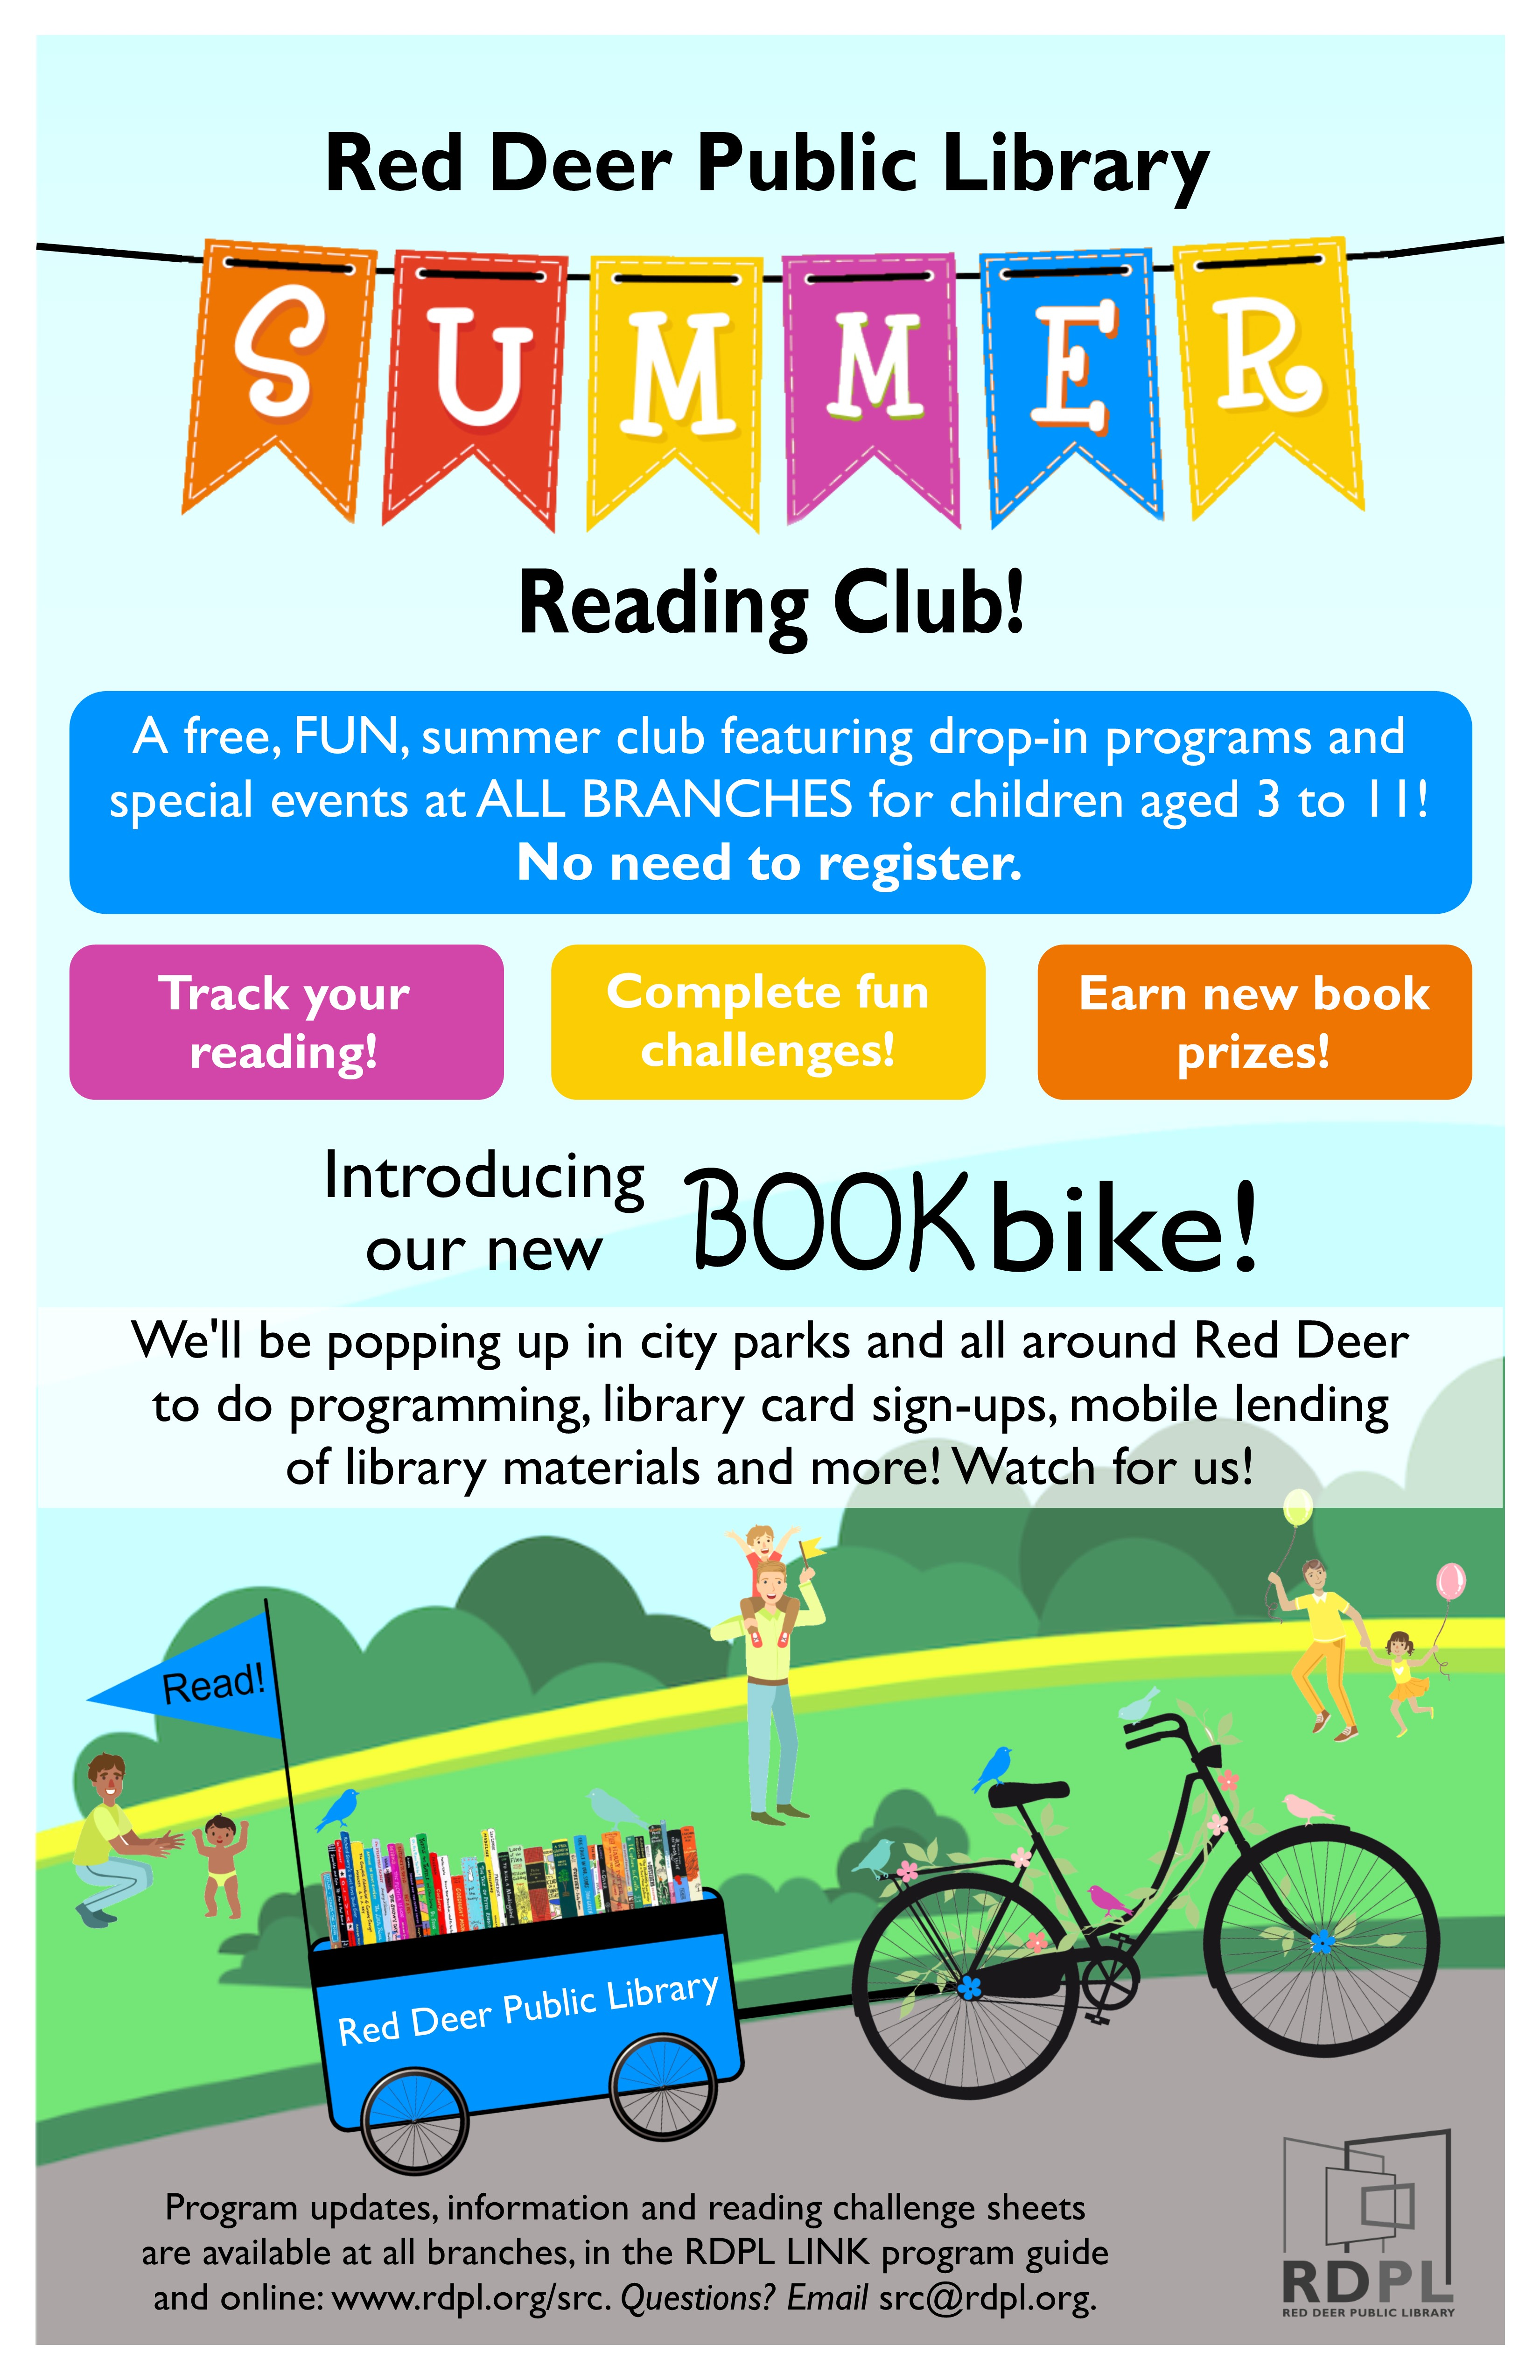 Summer Reading Club for ALL ages